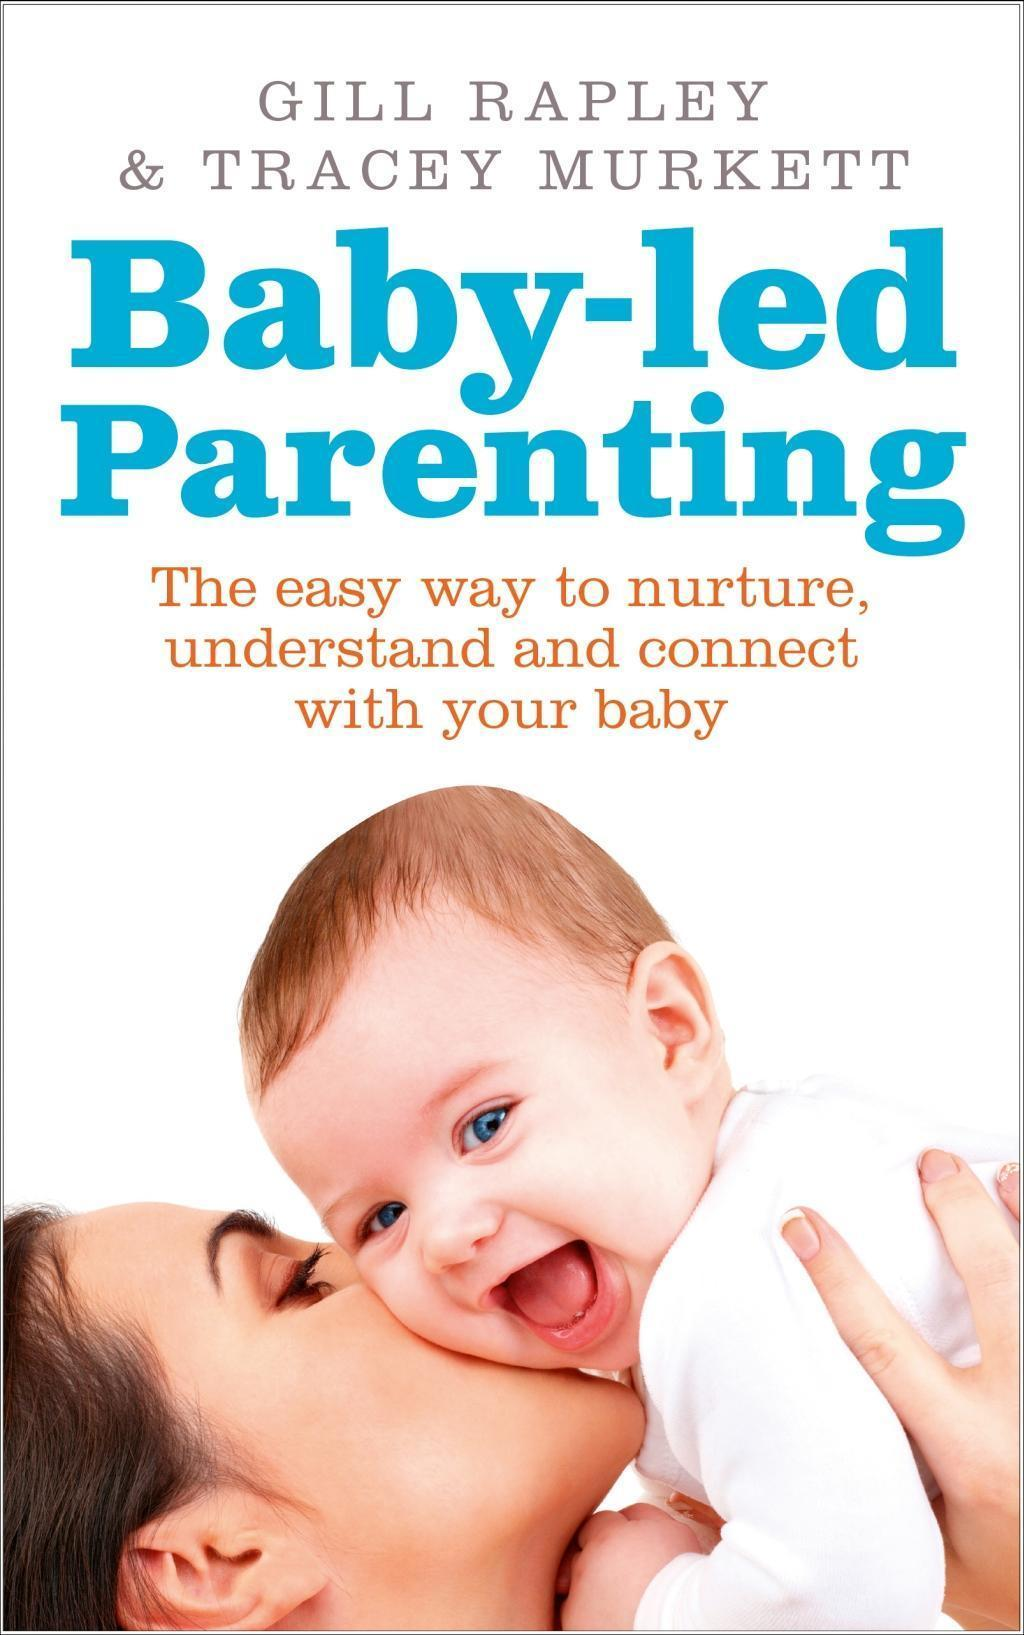 Baby-led Parenting